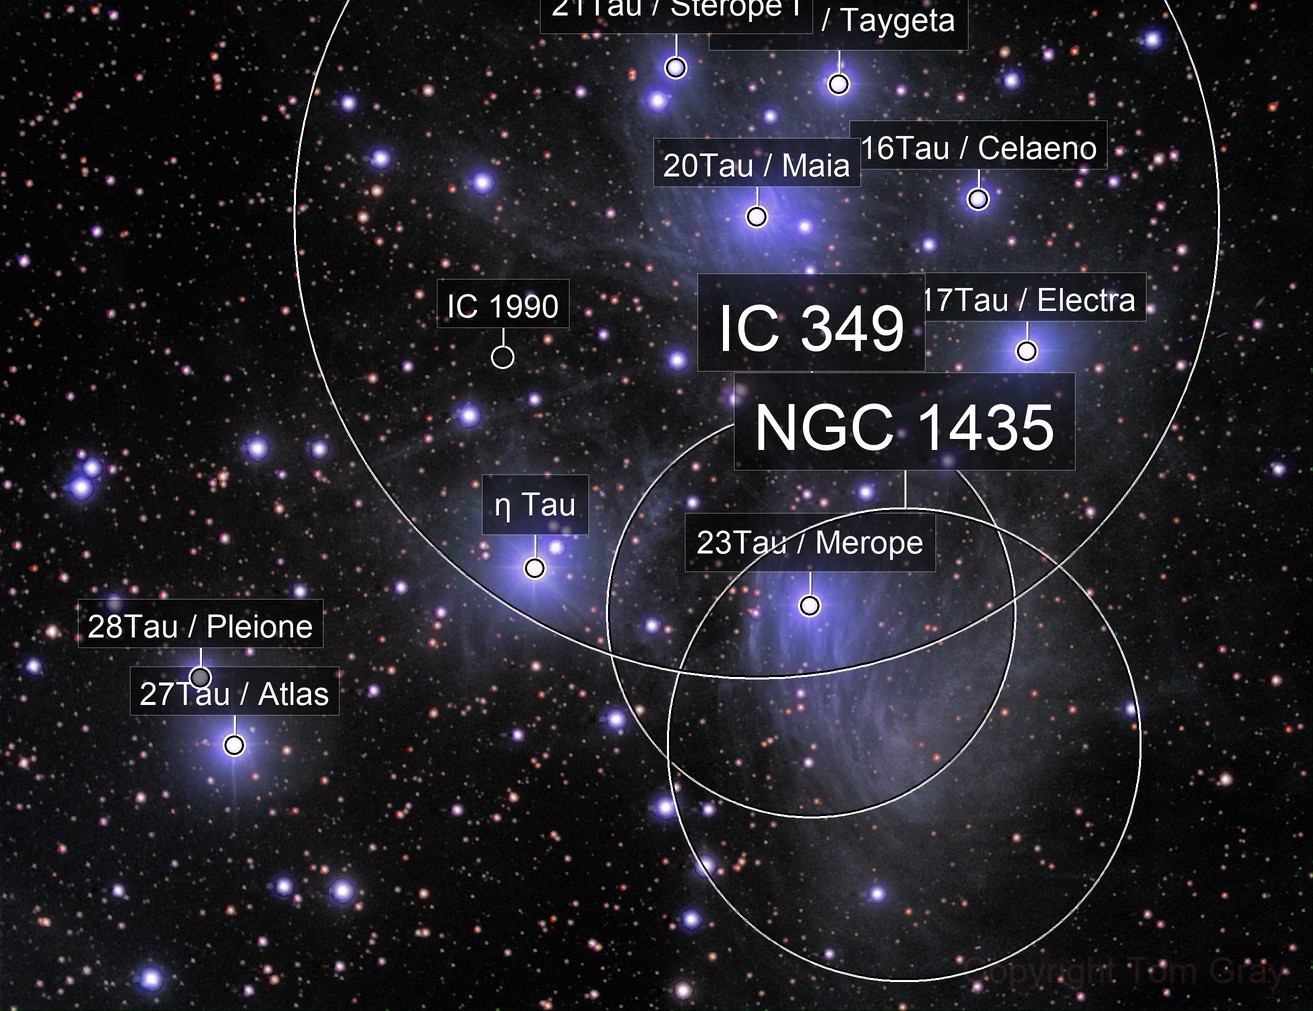 M45 - dusting off the Pleiades